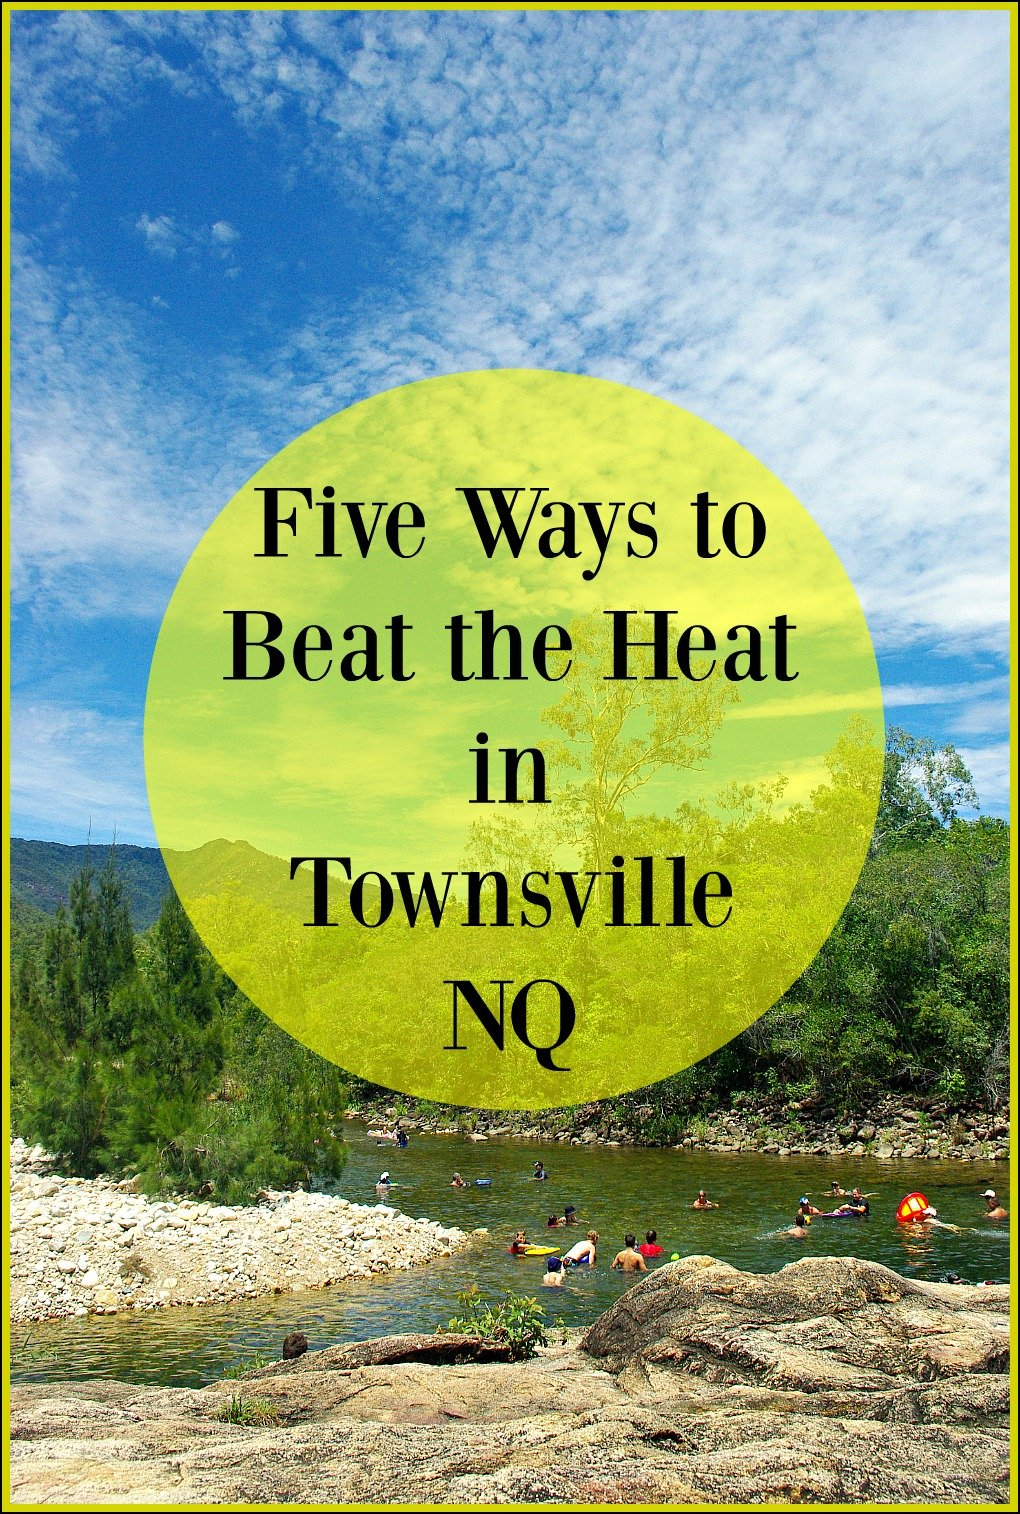 Life in the Tropics can get Hot but here are Five Ways to Beat the Heat in Townsville North Queensland